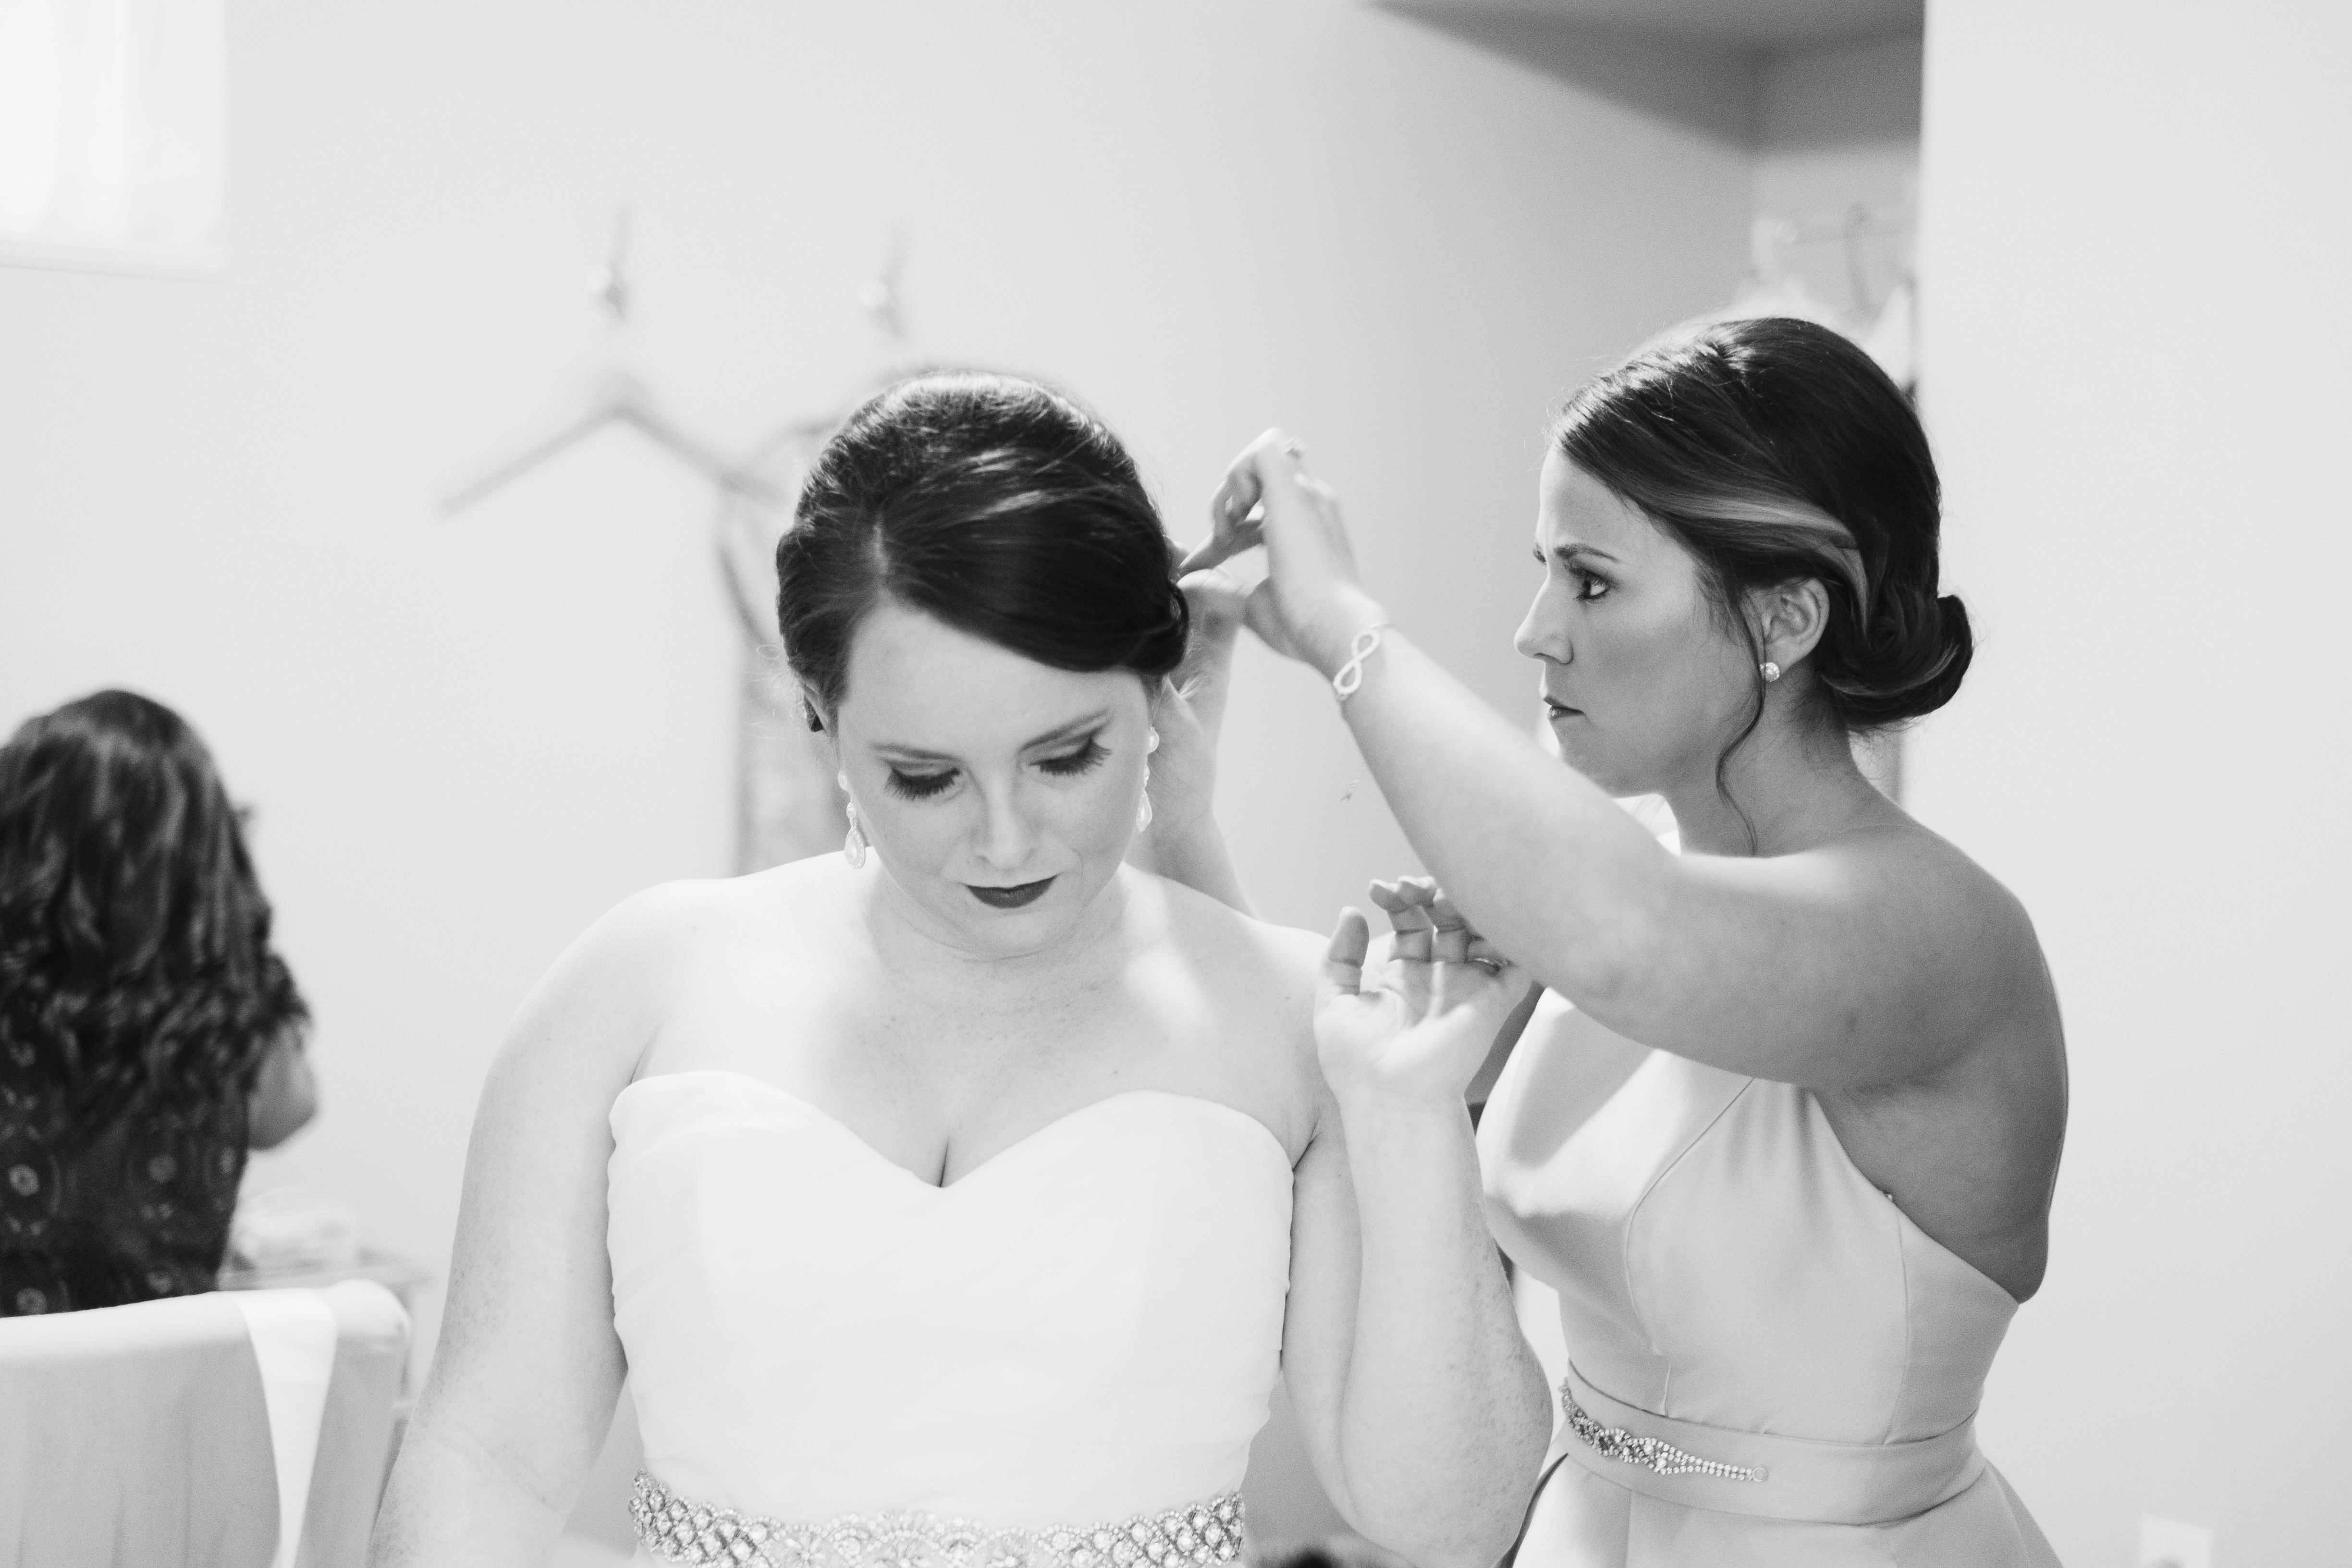 A photo of a bride and her maid of honor, making last-minute adjustments to the bride's hair, before her wedding. Photo taken by Pait Photography, at a wedding at St. Thomas Preservation Hall, in Wilmington, NC.